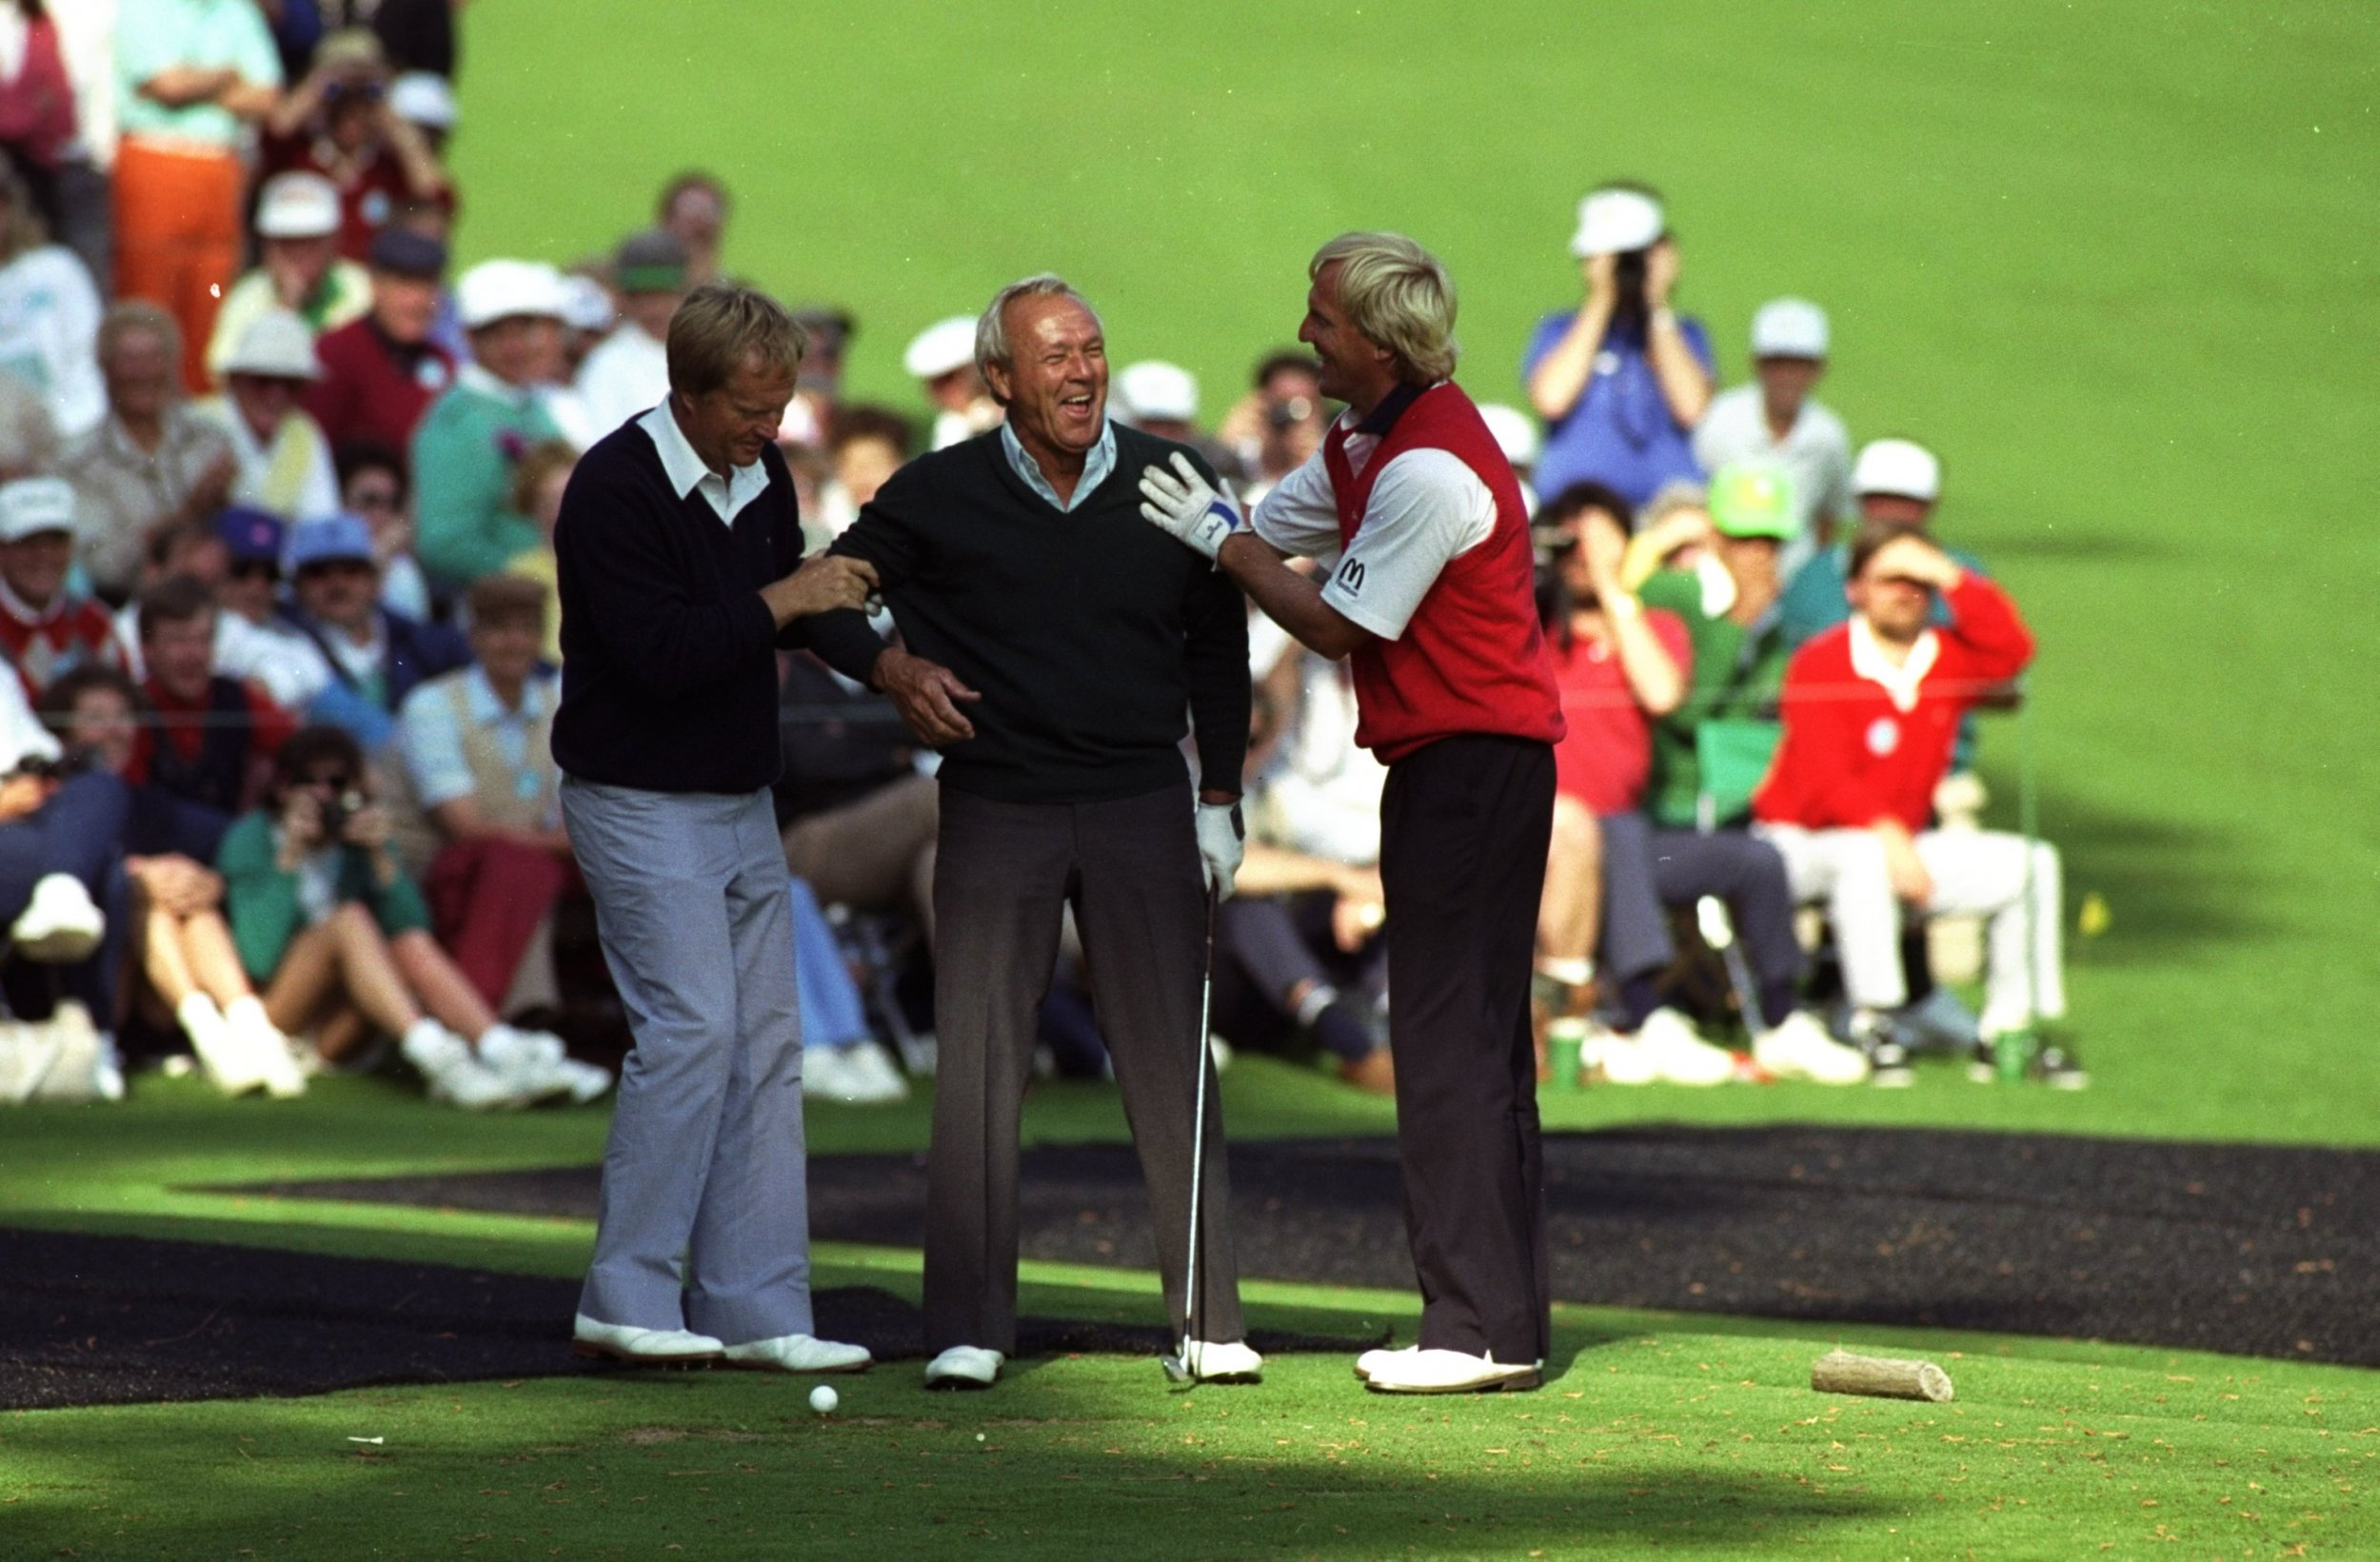 Nicklaus, Palmer and Norman